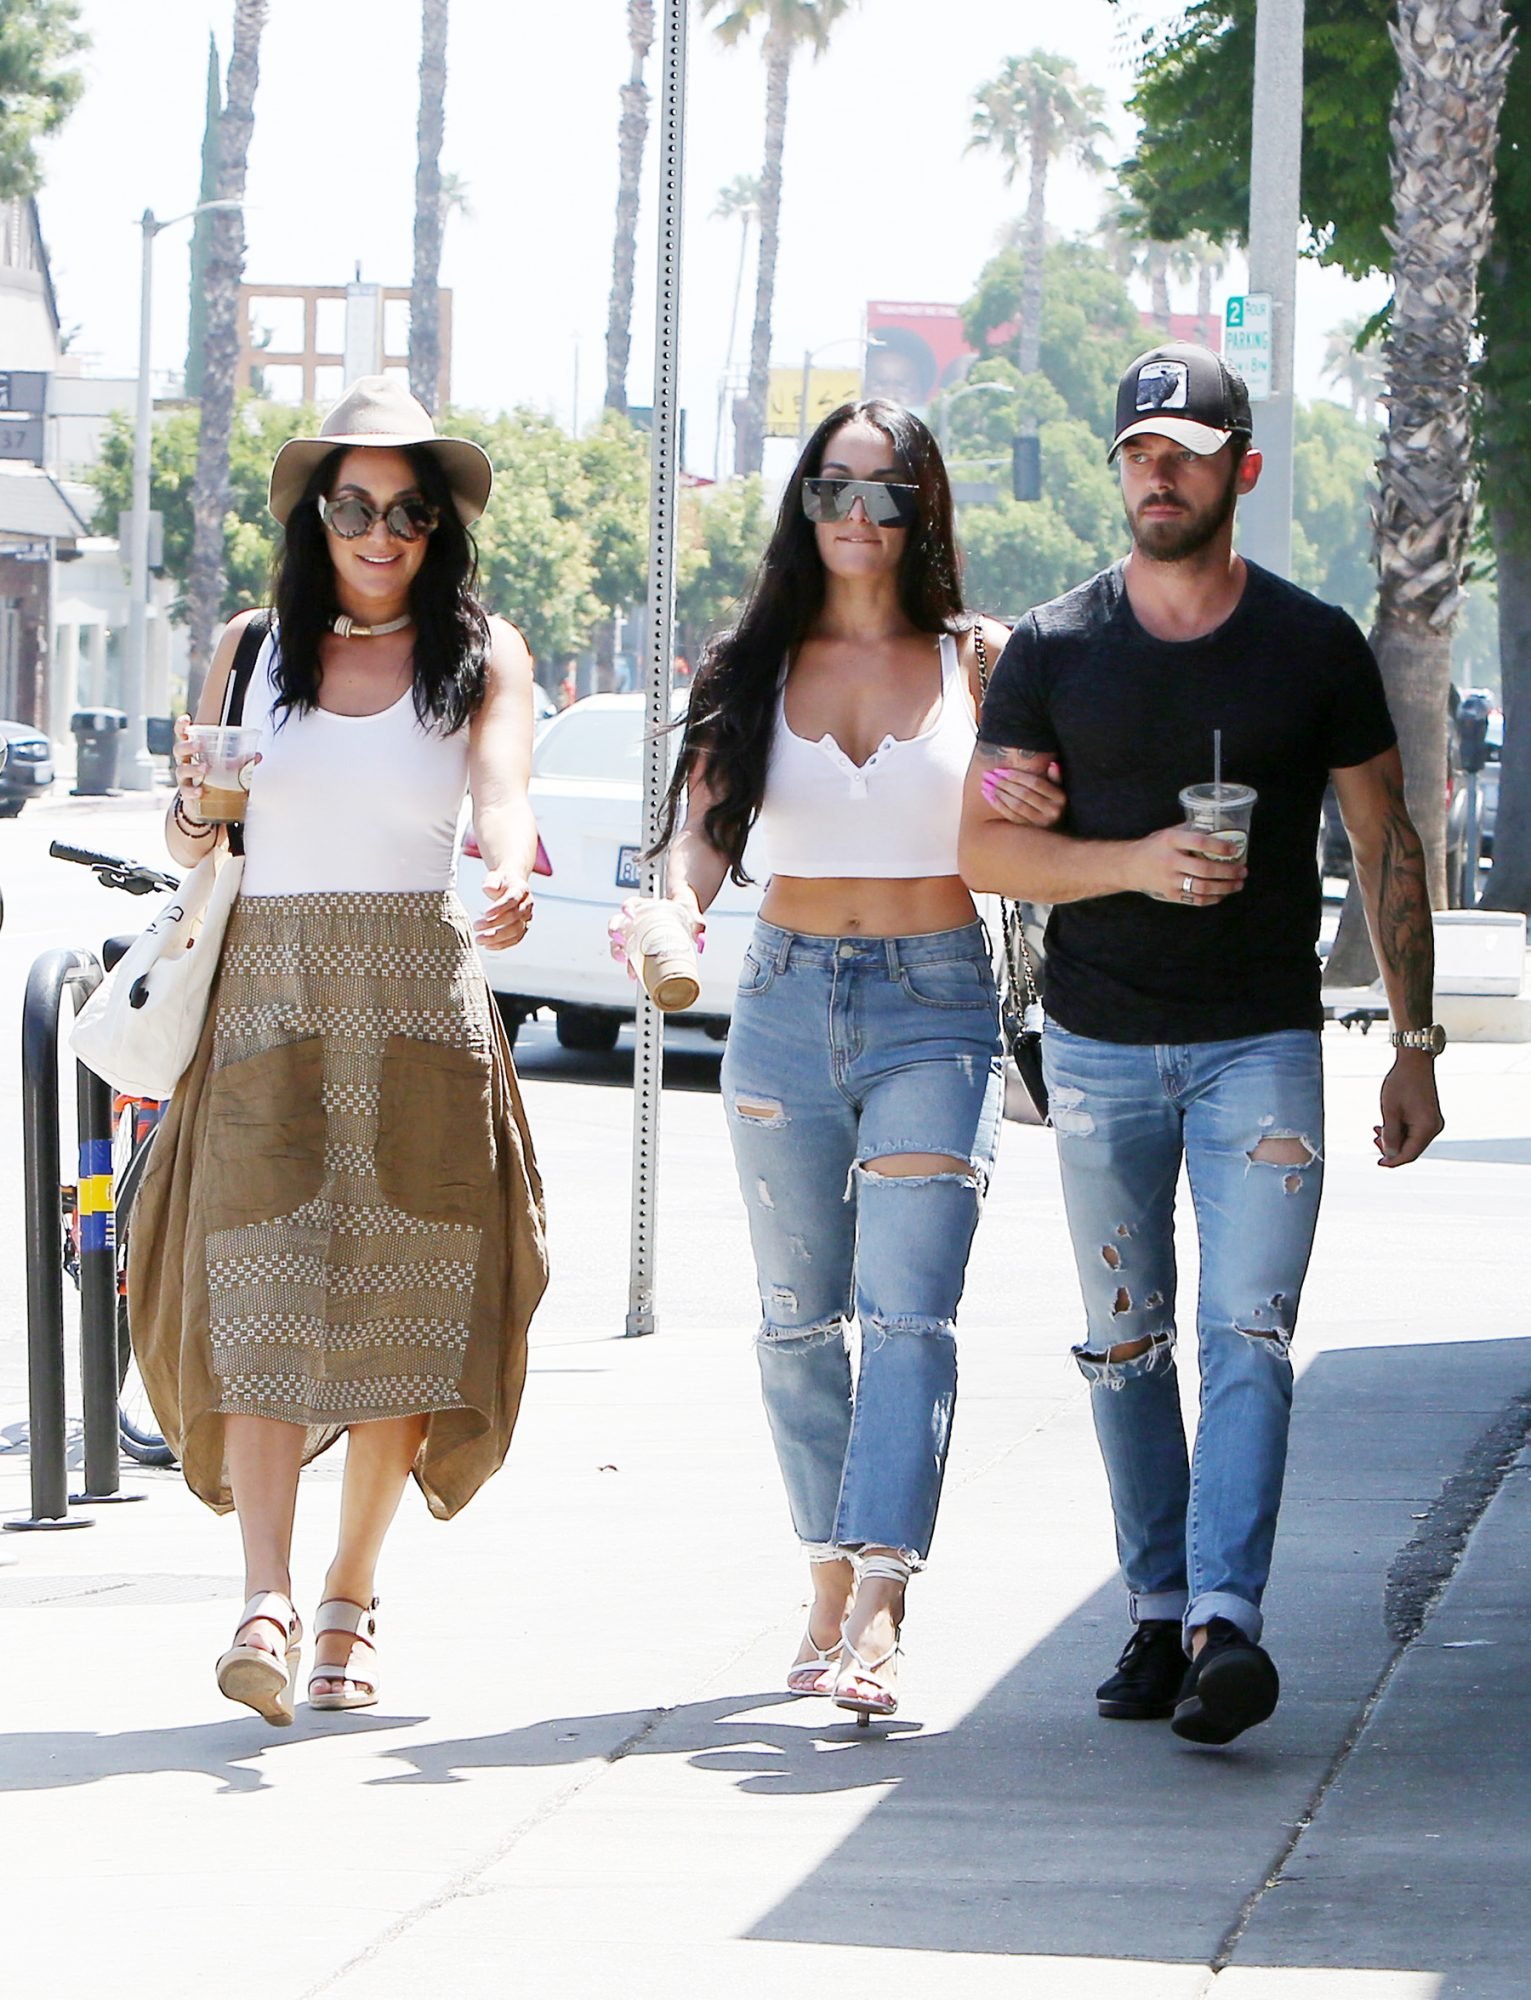 Nikki Bella and Artem Chigvintsev are joined by sister Brie Bella